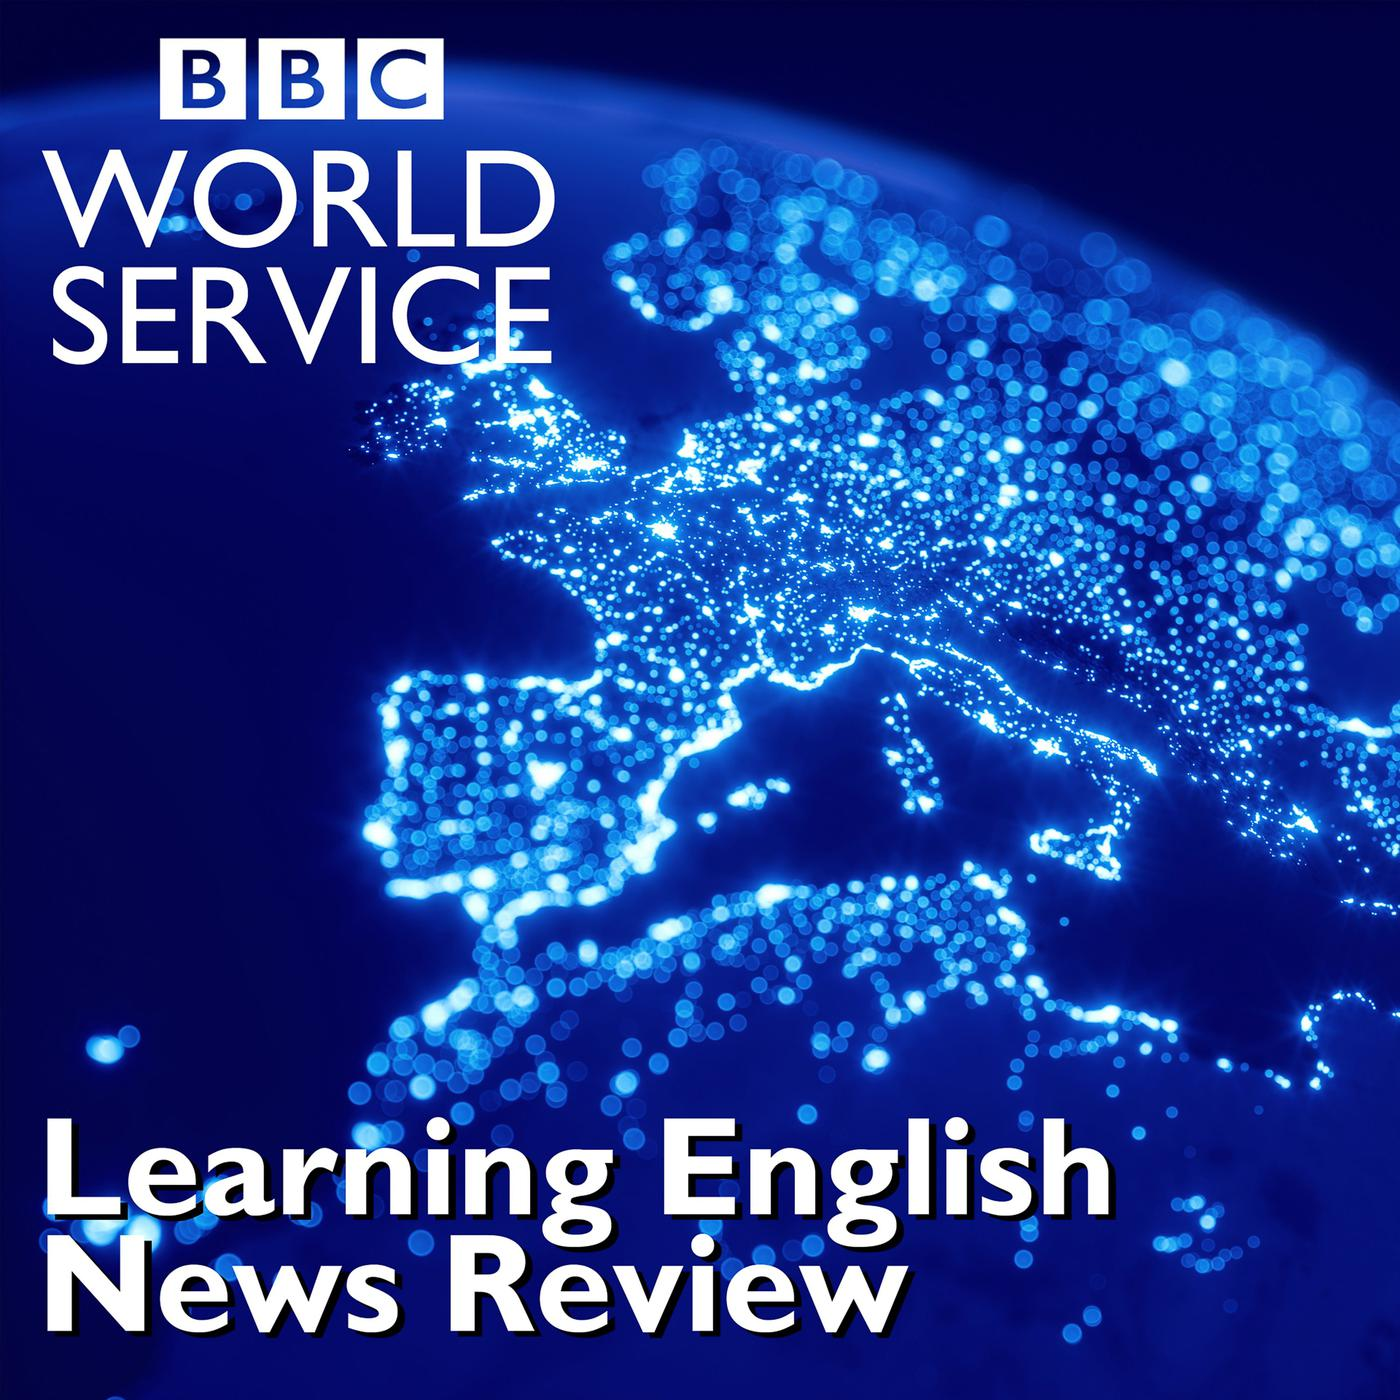 The News Review >> Learning English News Review Podcast Bbc Radio Listen